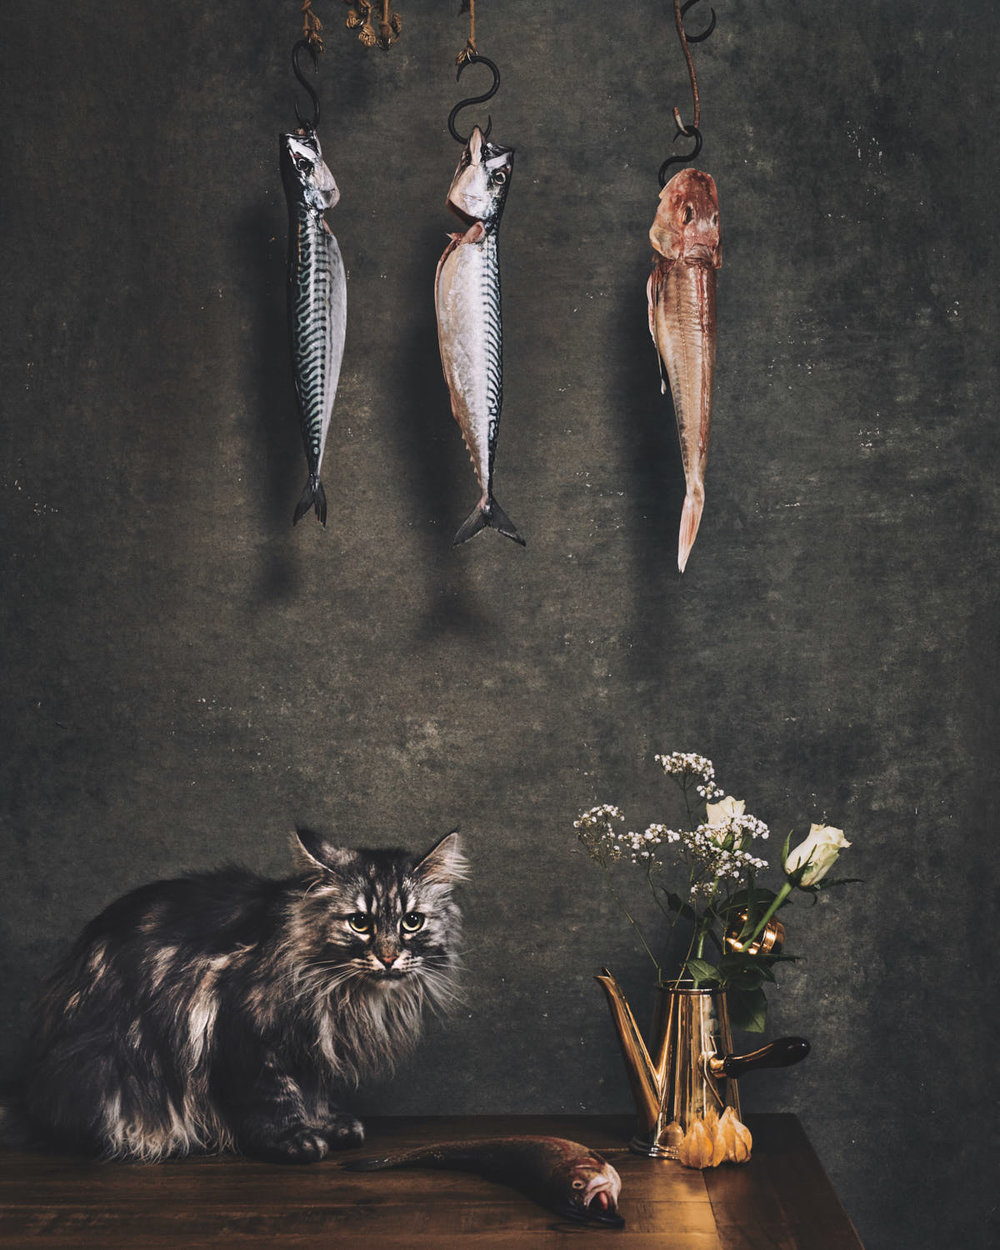 dutch-masters--of-cats-shot-by-matthew-lloyd 1.jpg